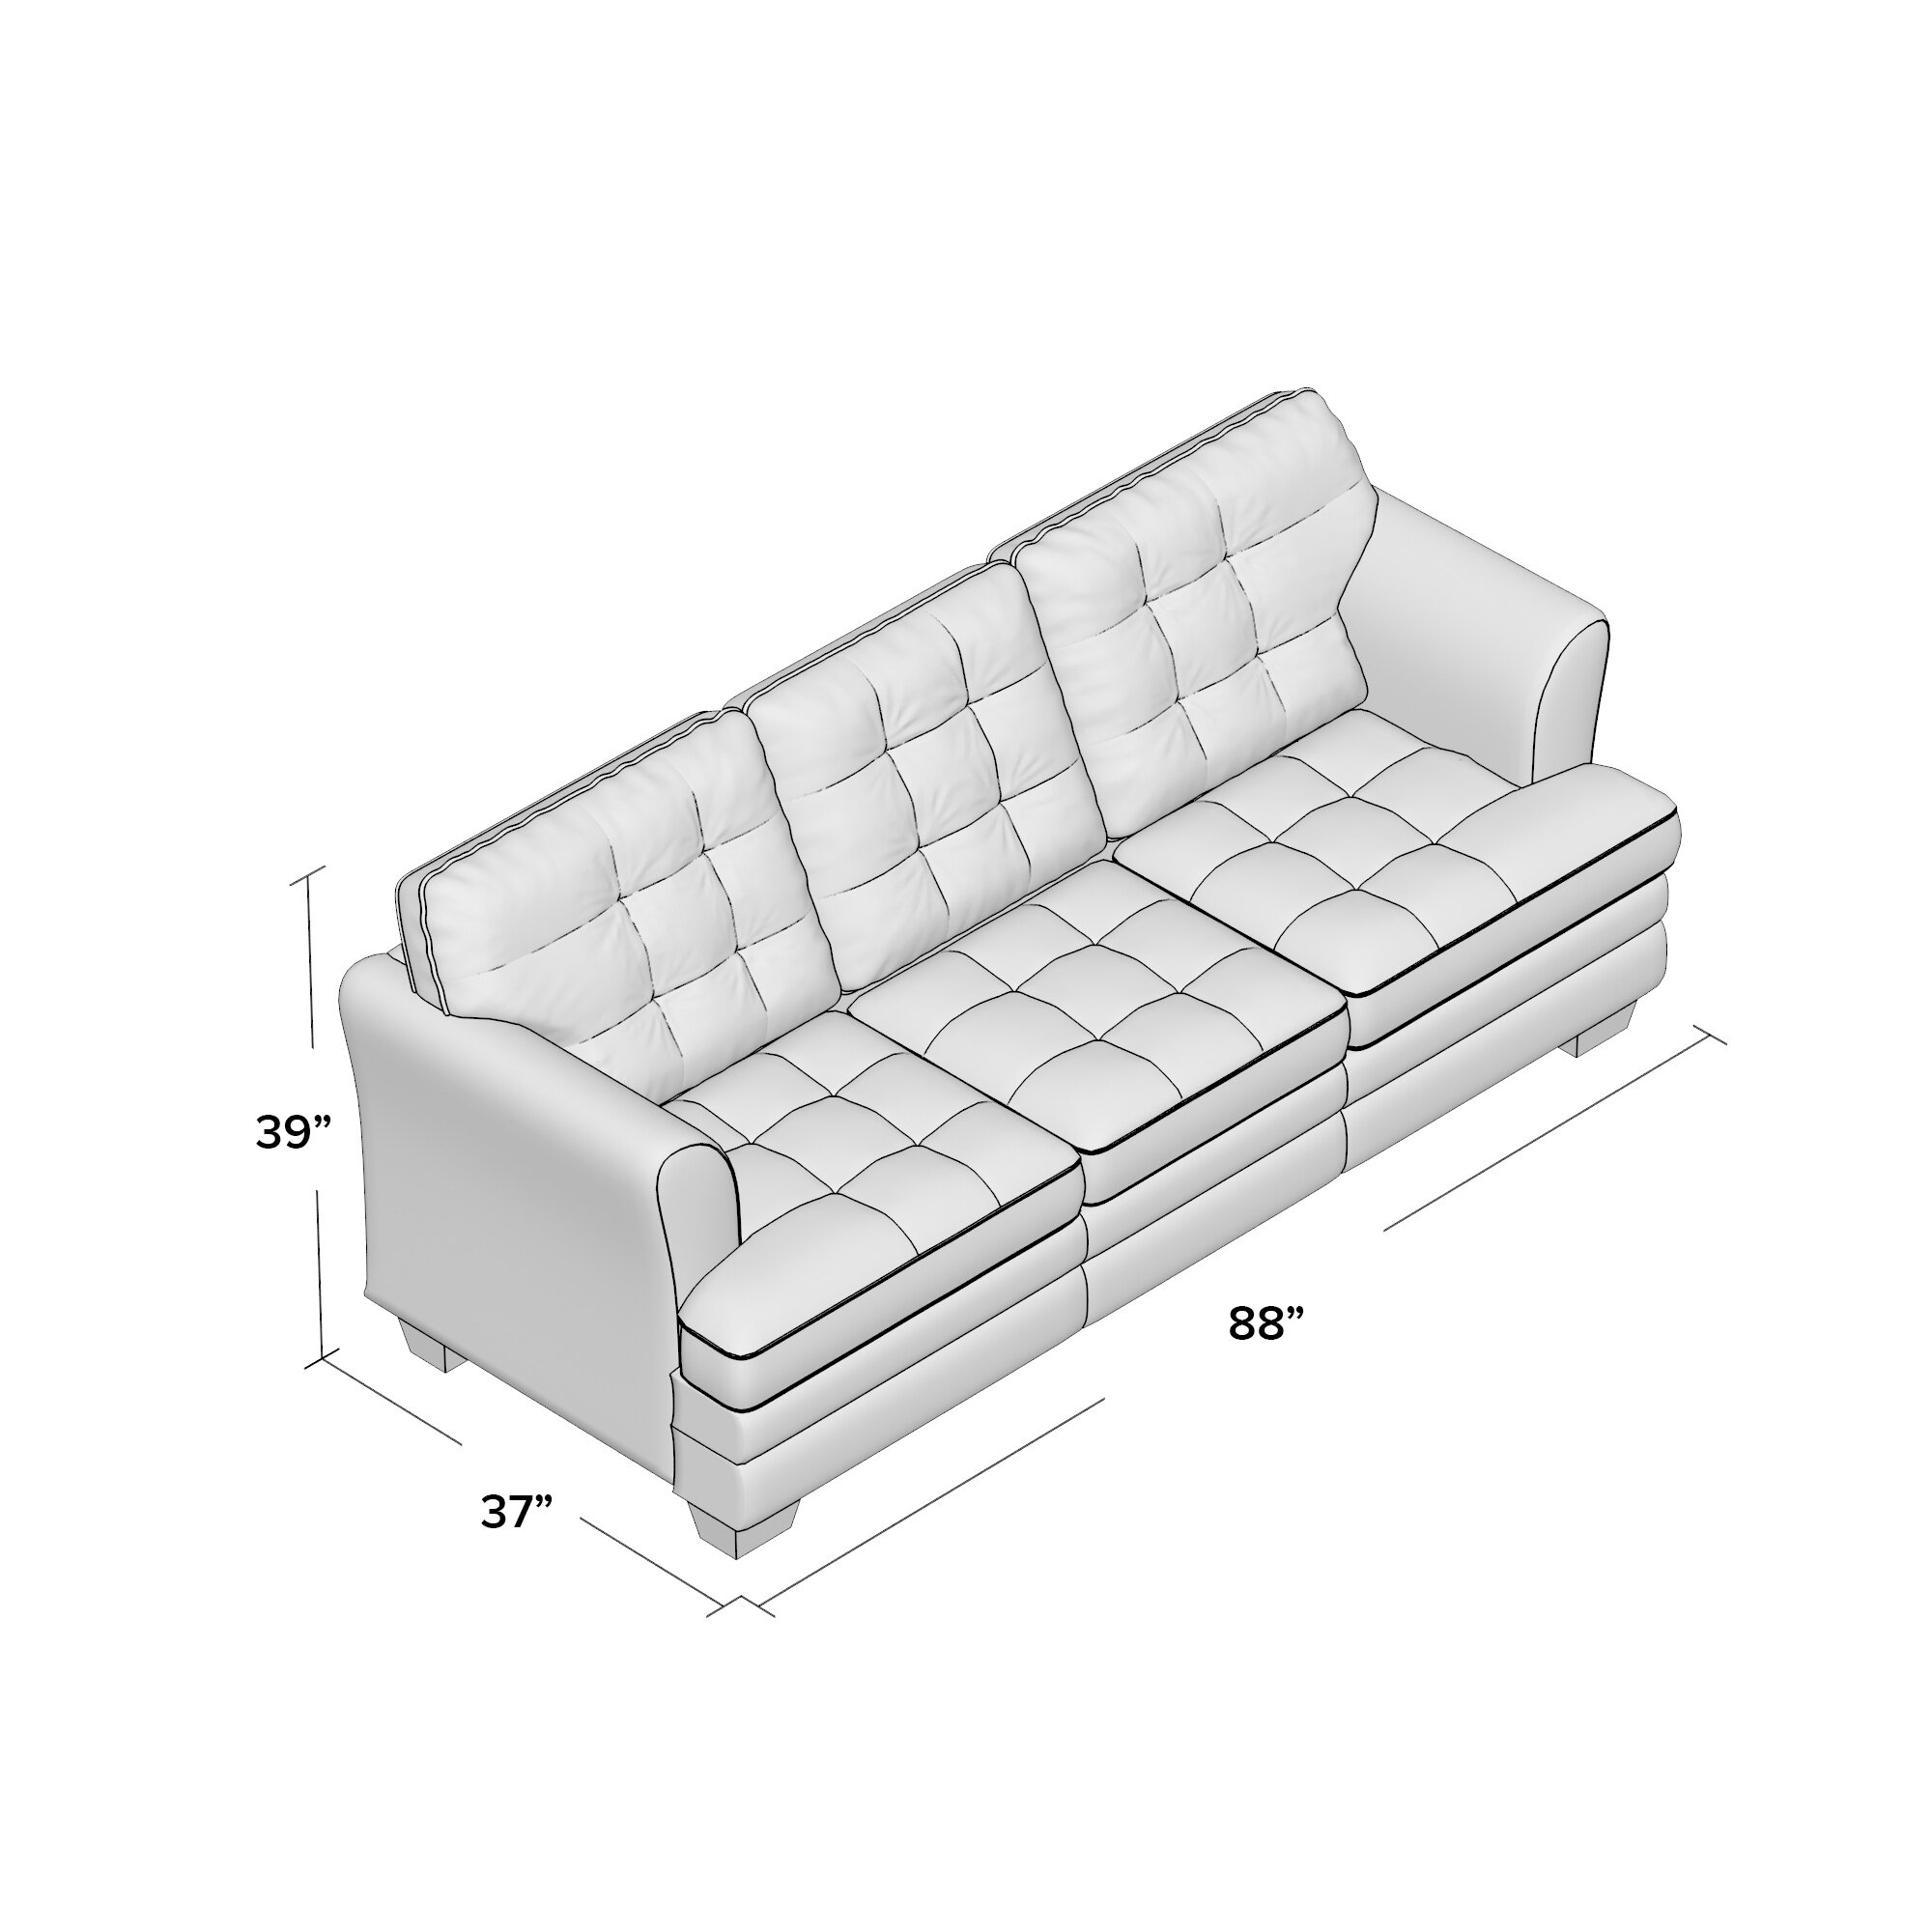 Alcott Hill Simmons Upholstery Rathdowney Sleeper Sofa Reviews